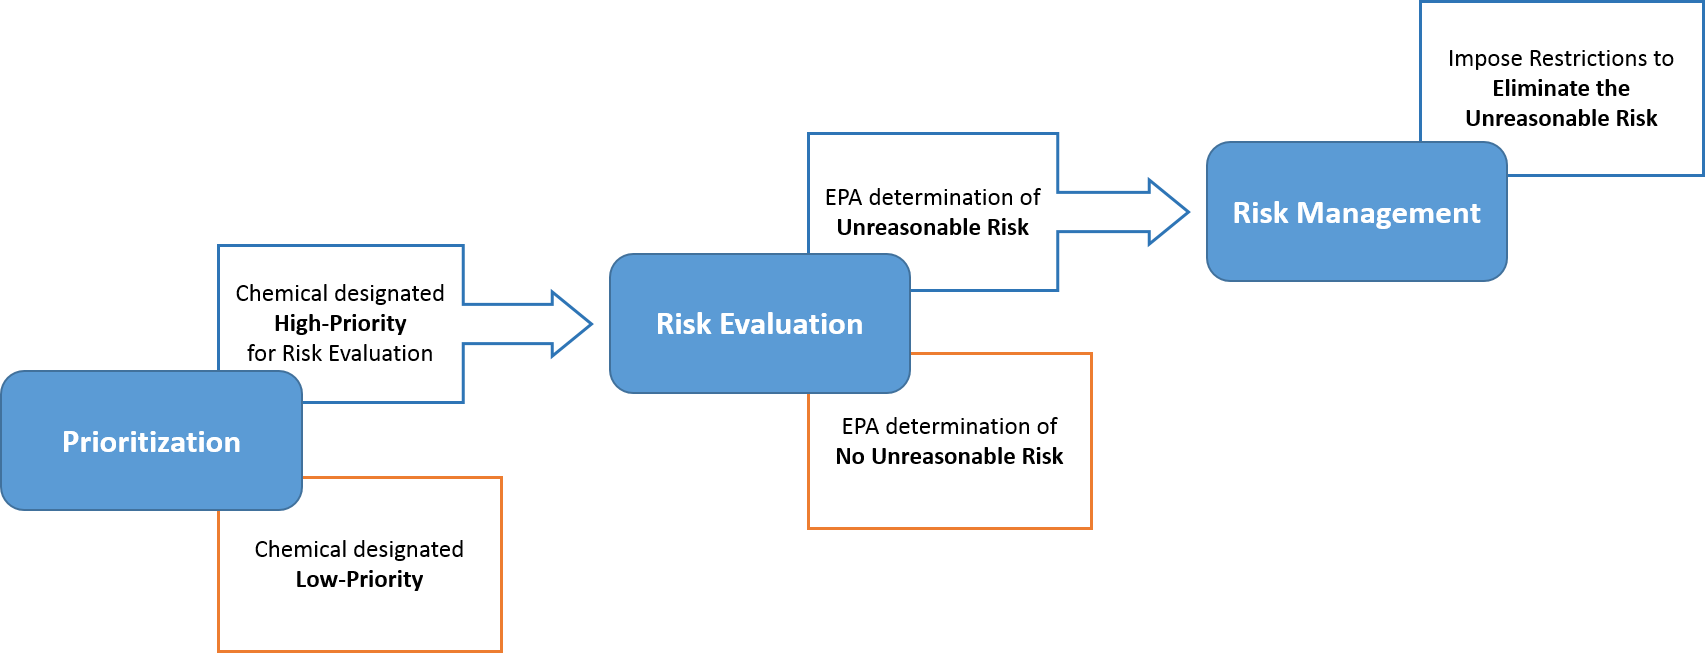 Epa S Risk Assessment Process National Tribal Toxics Council Therefore, you want to create output that is helpful to management. epa s risk assessment process